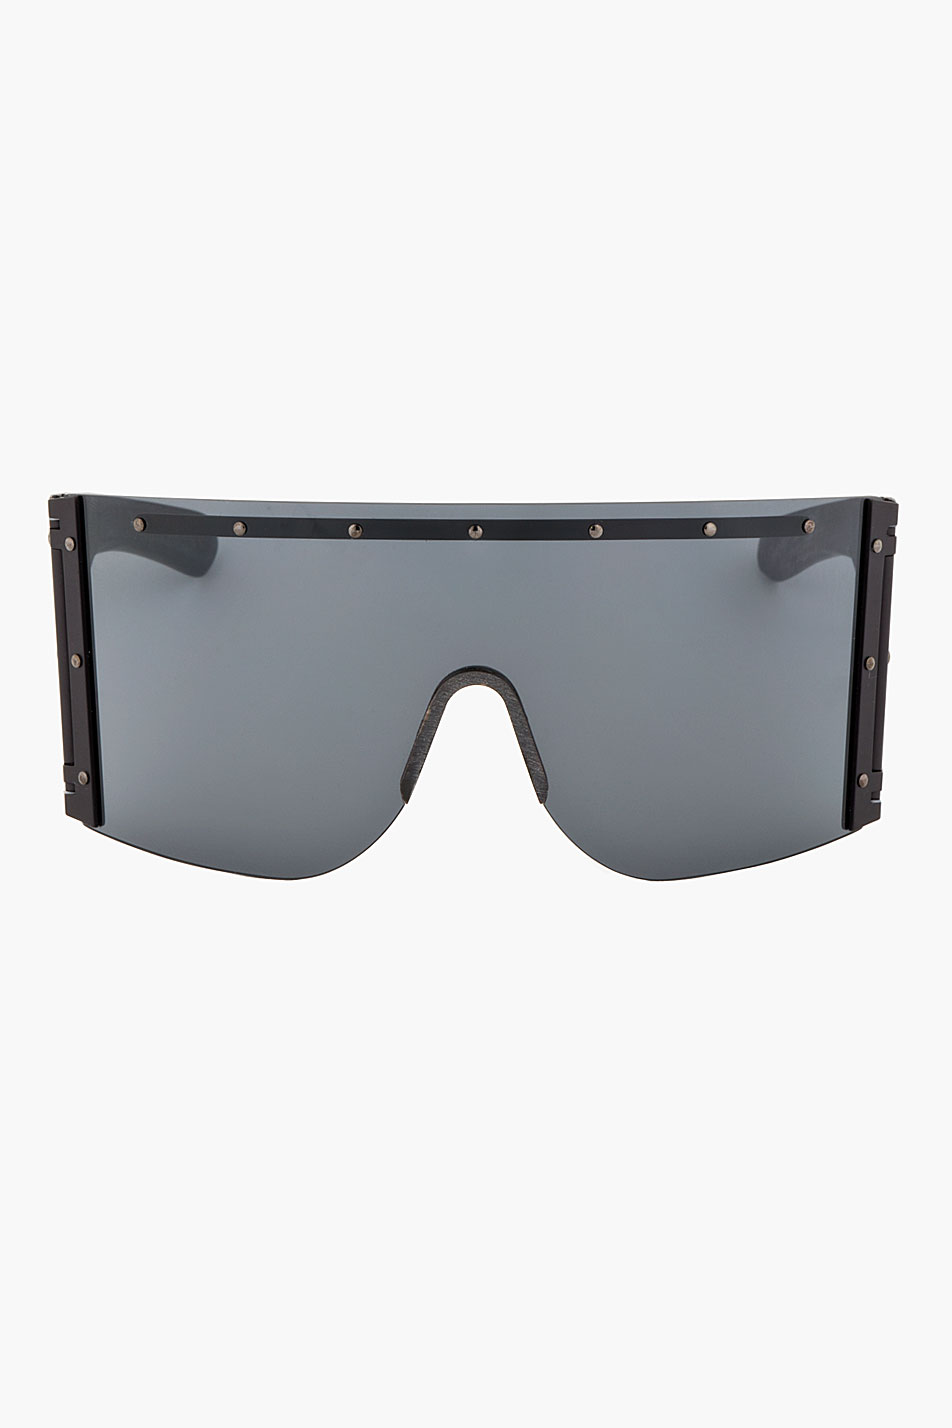 014f51abf63f Rick Owens Oversized Shield Sunglasses in Black for Men - Lyst